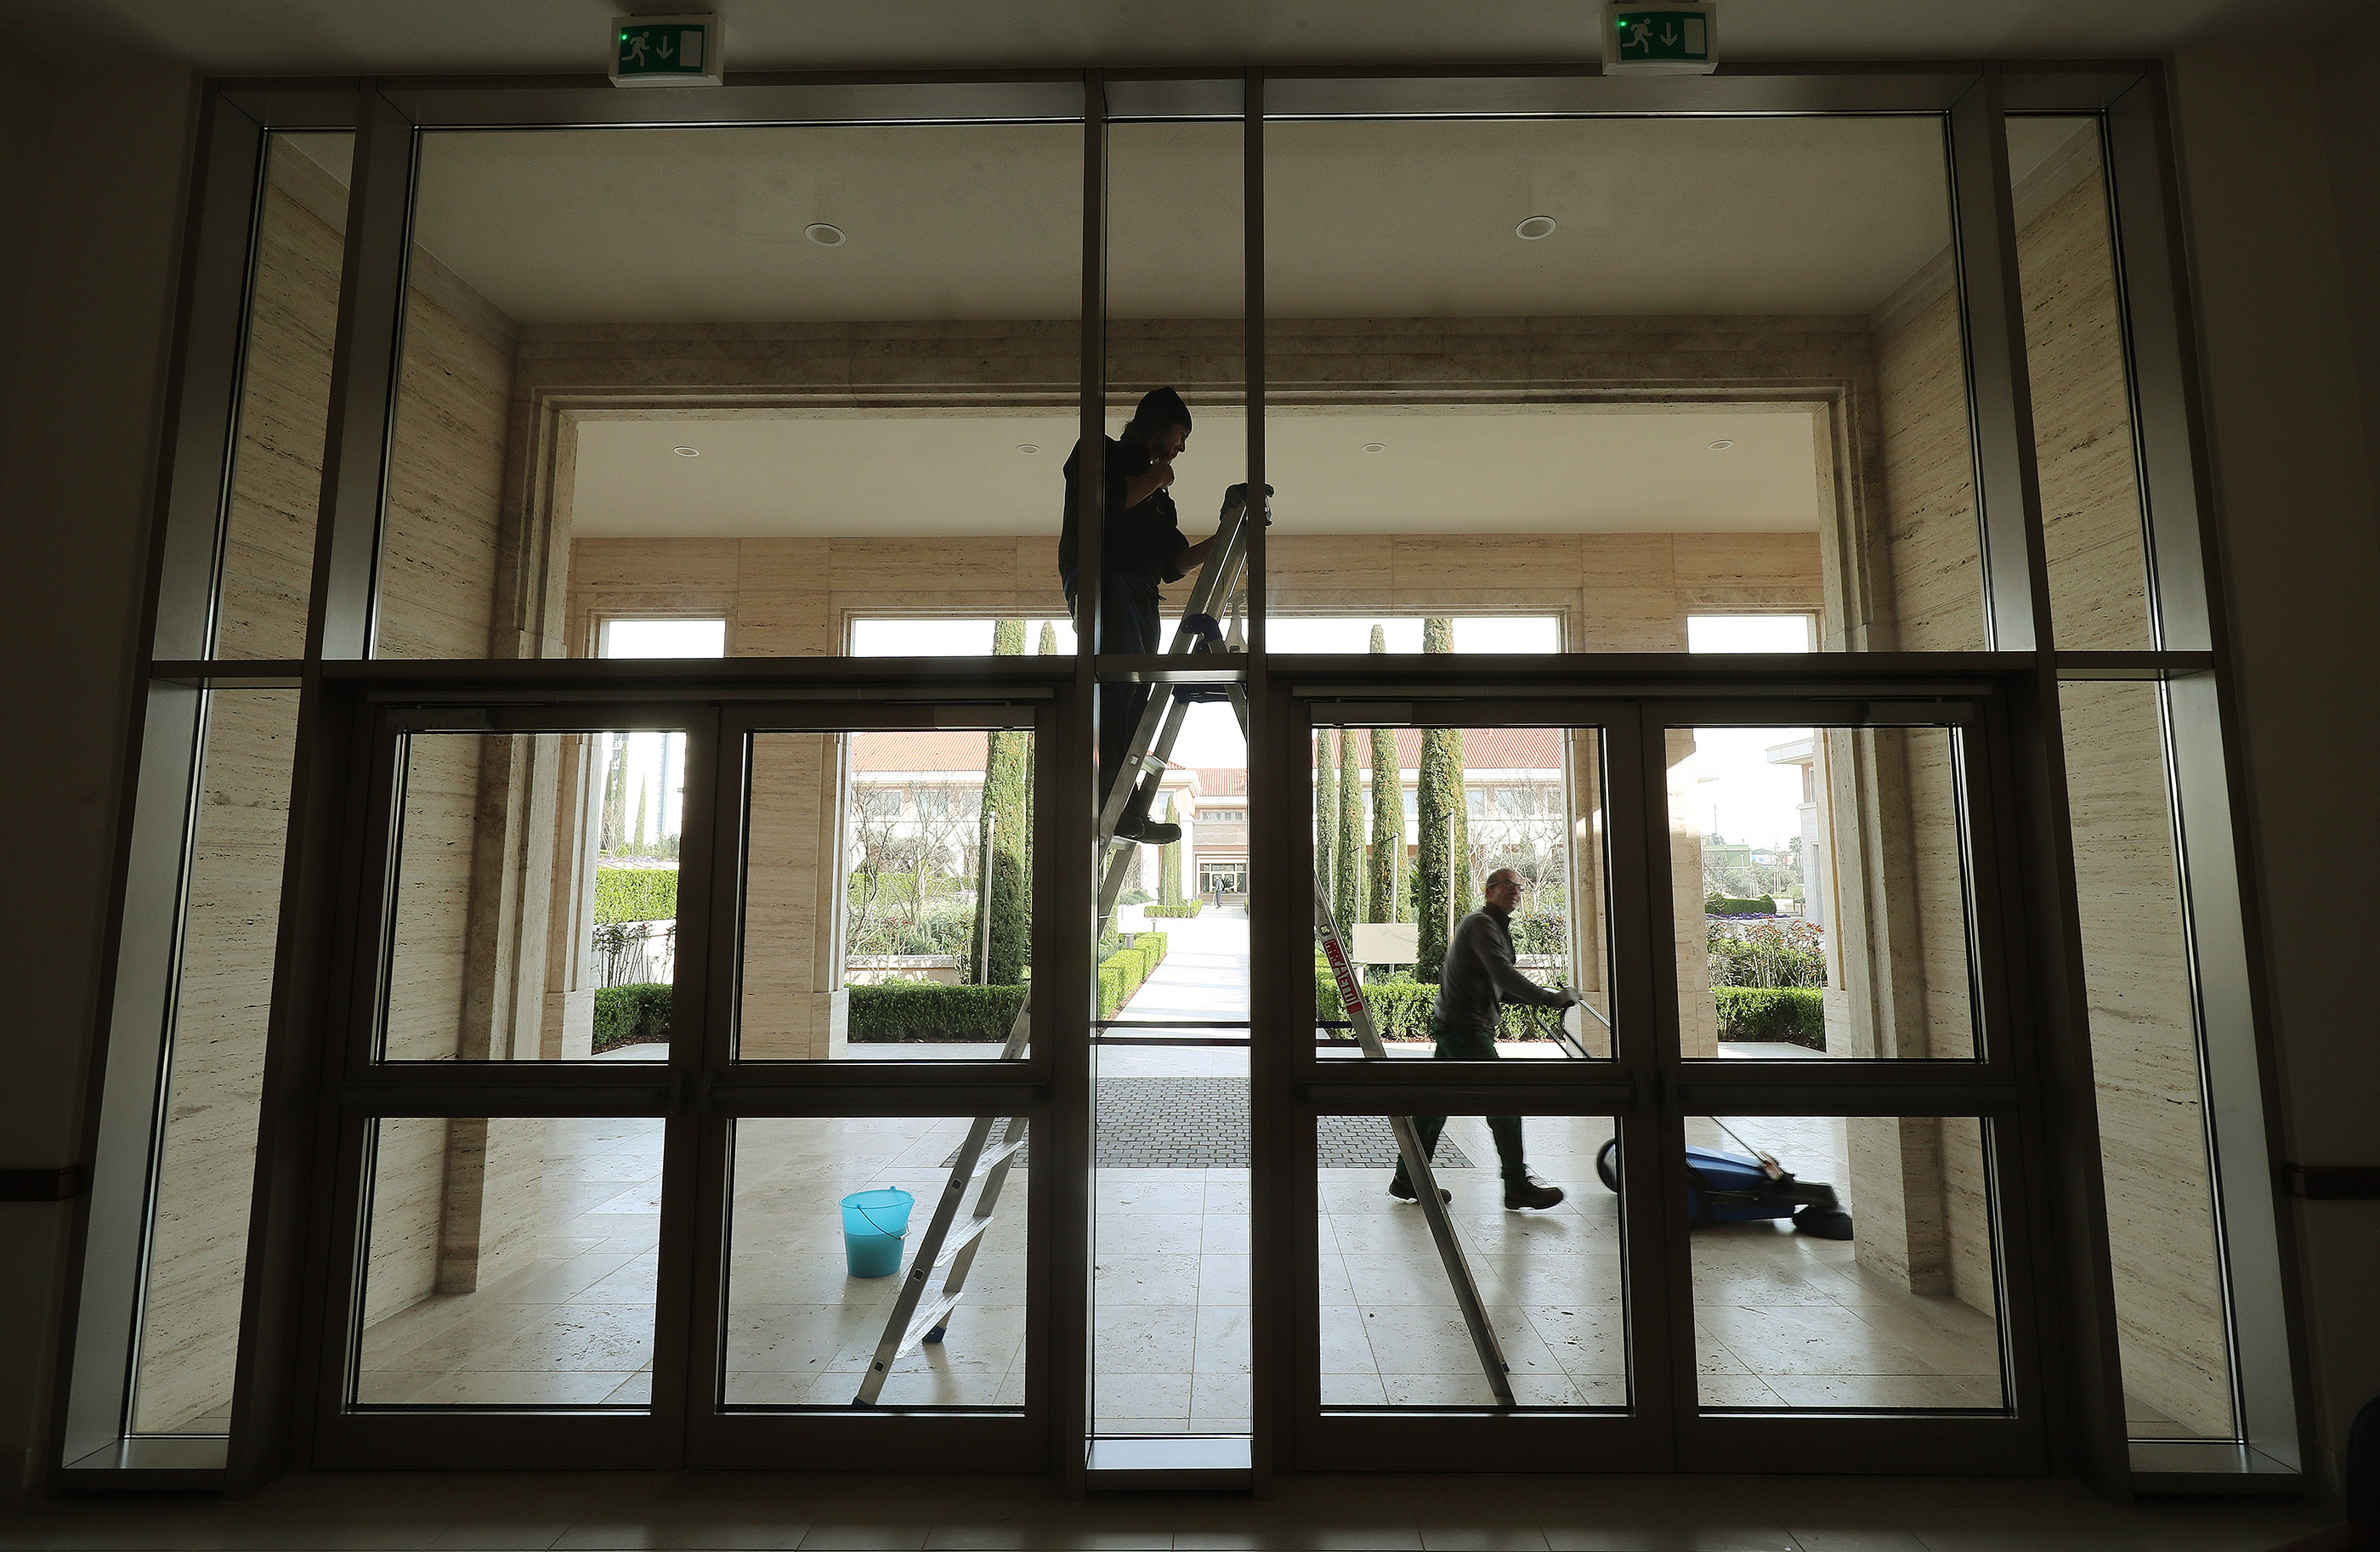 Windows are cleaned in the meetinghouse on the grounds of the Rome Italy Temple of The Church of Jesus Christ of Latter-day Saints on Friday, March 8, 2019 in preparation for the temple's upcoming dedication.